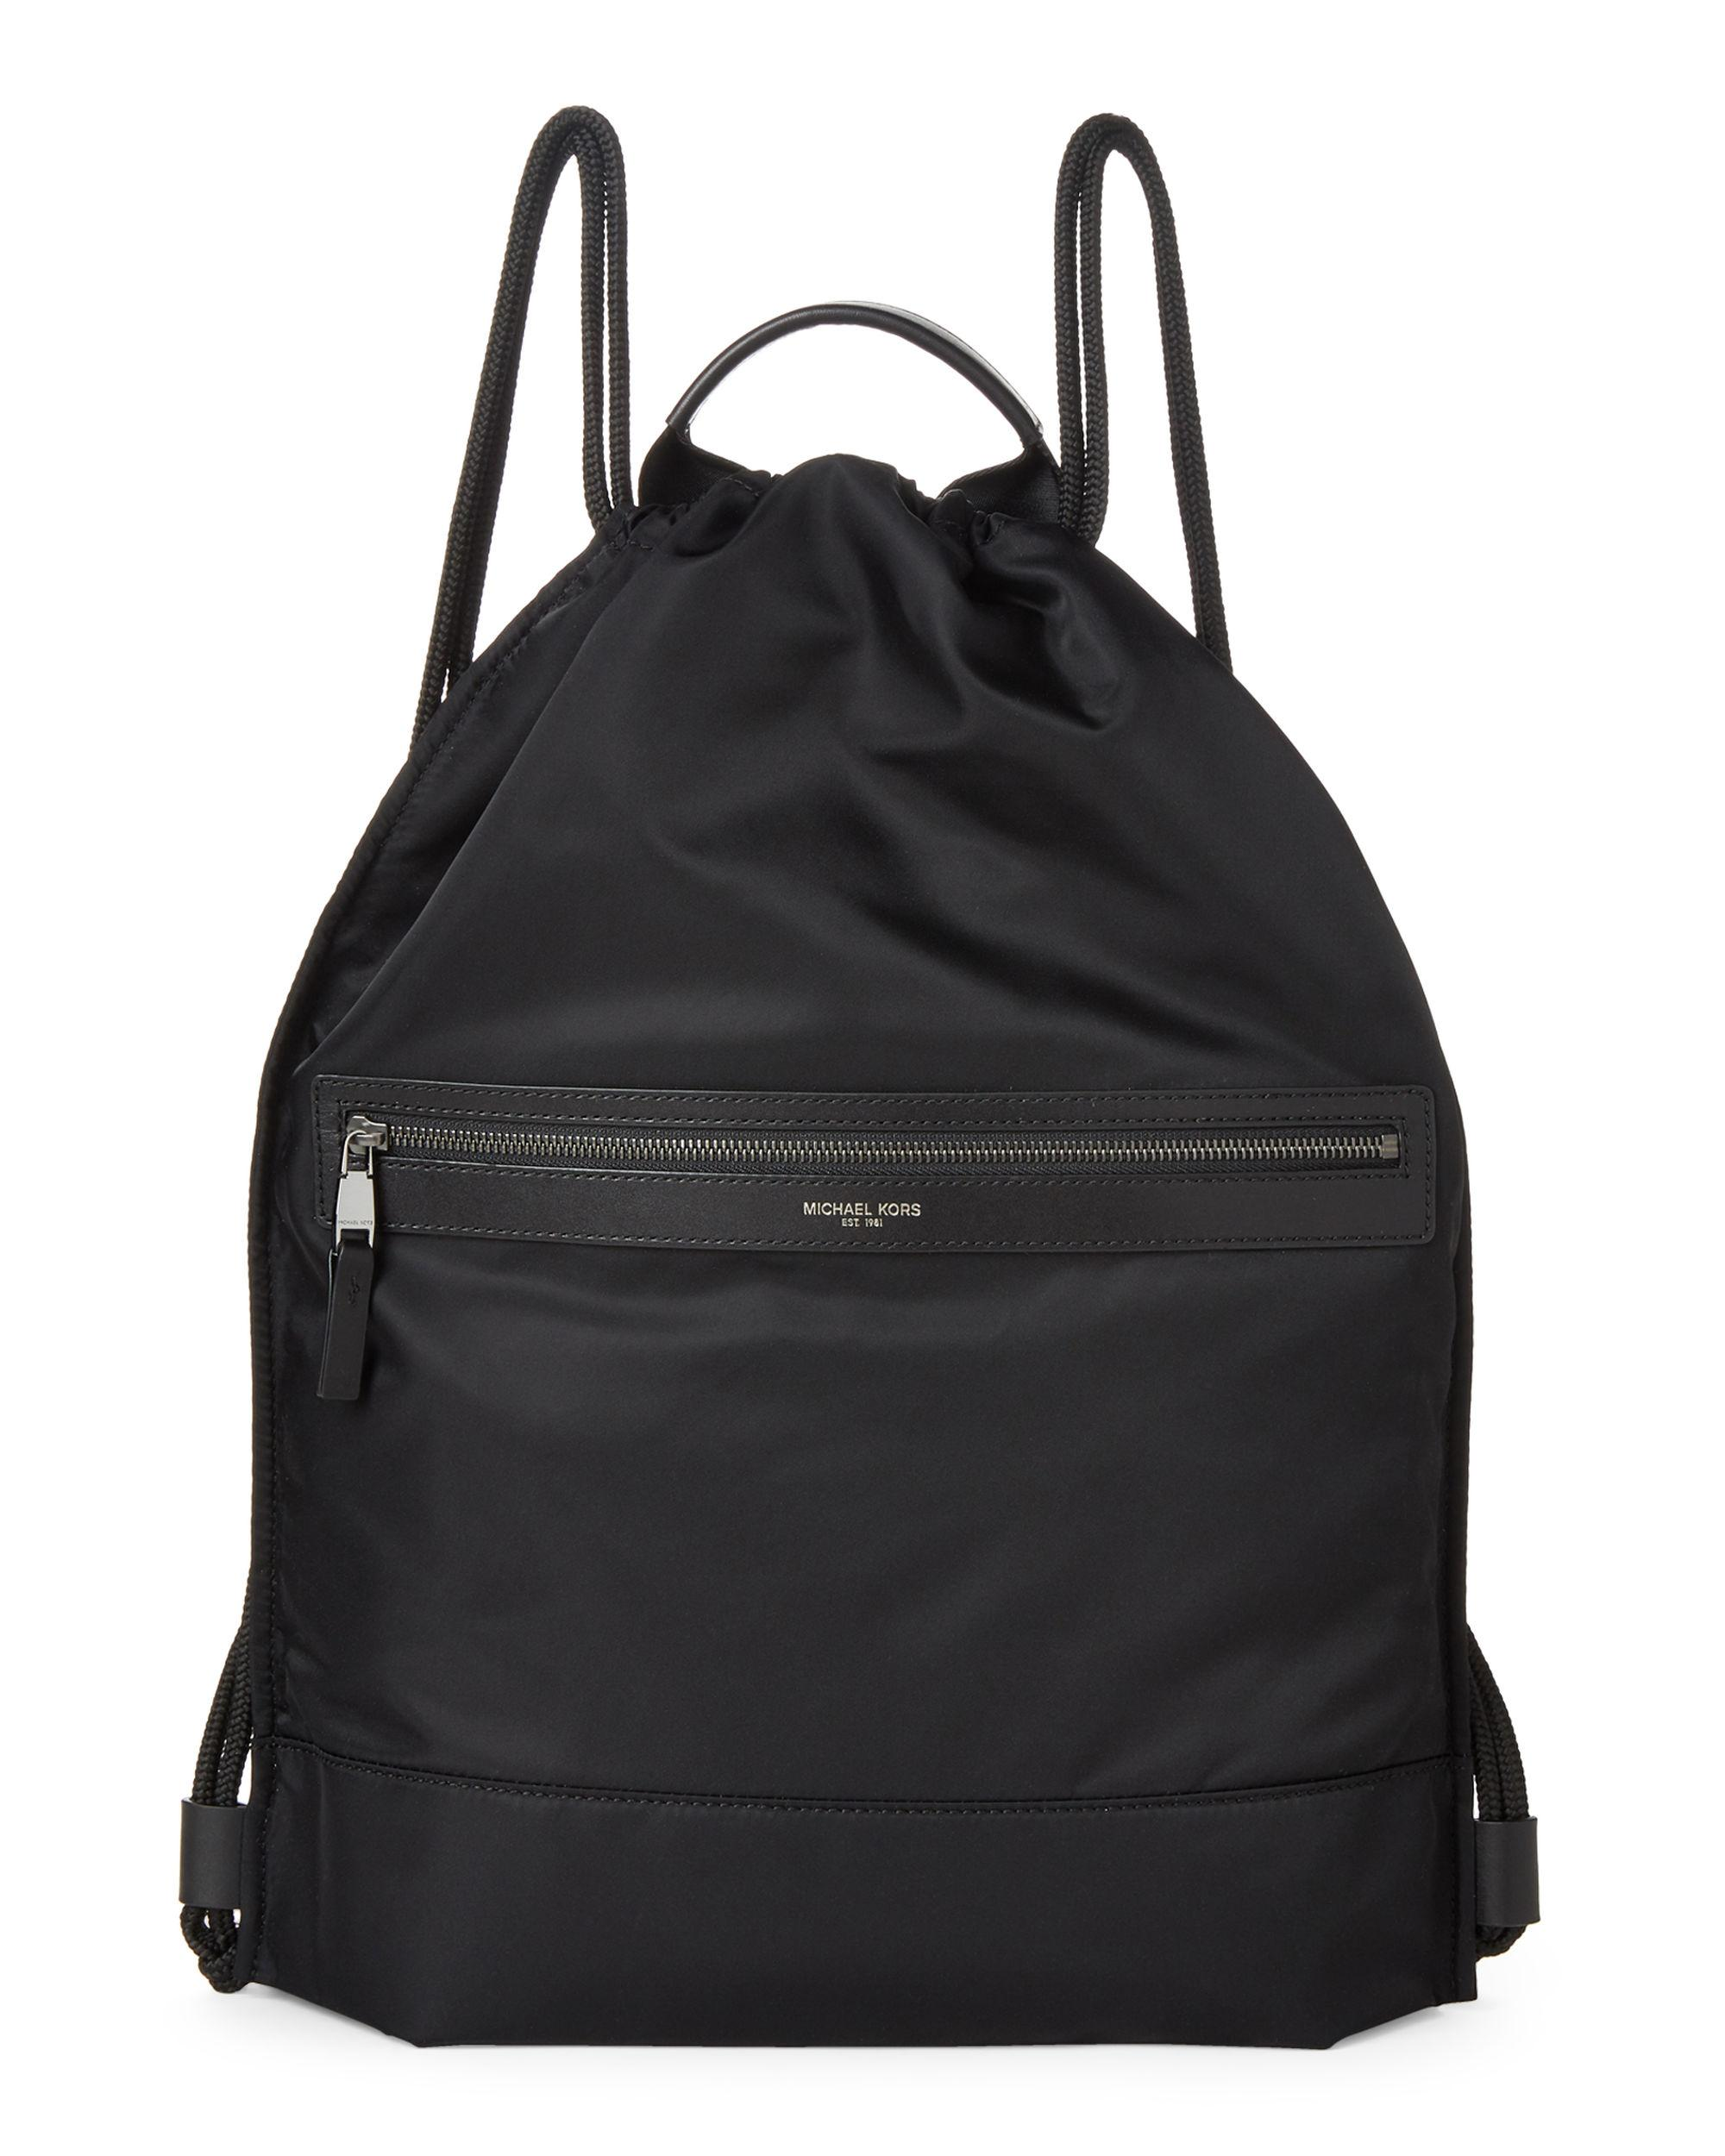 51c0500d1312 Michael Kors Black Kent Flat Drawstring Backpack in Black for Men - Lyst